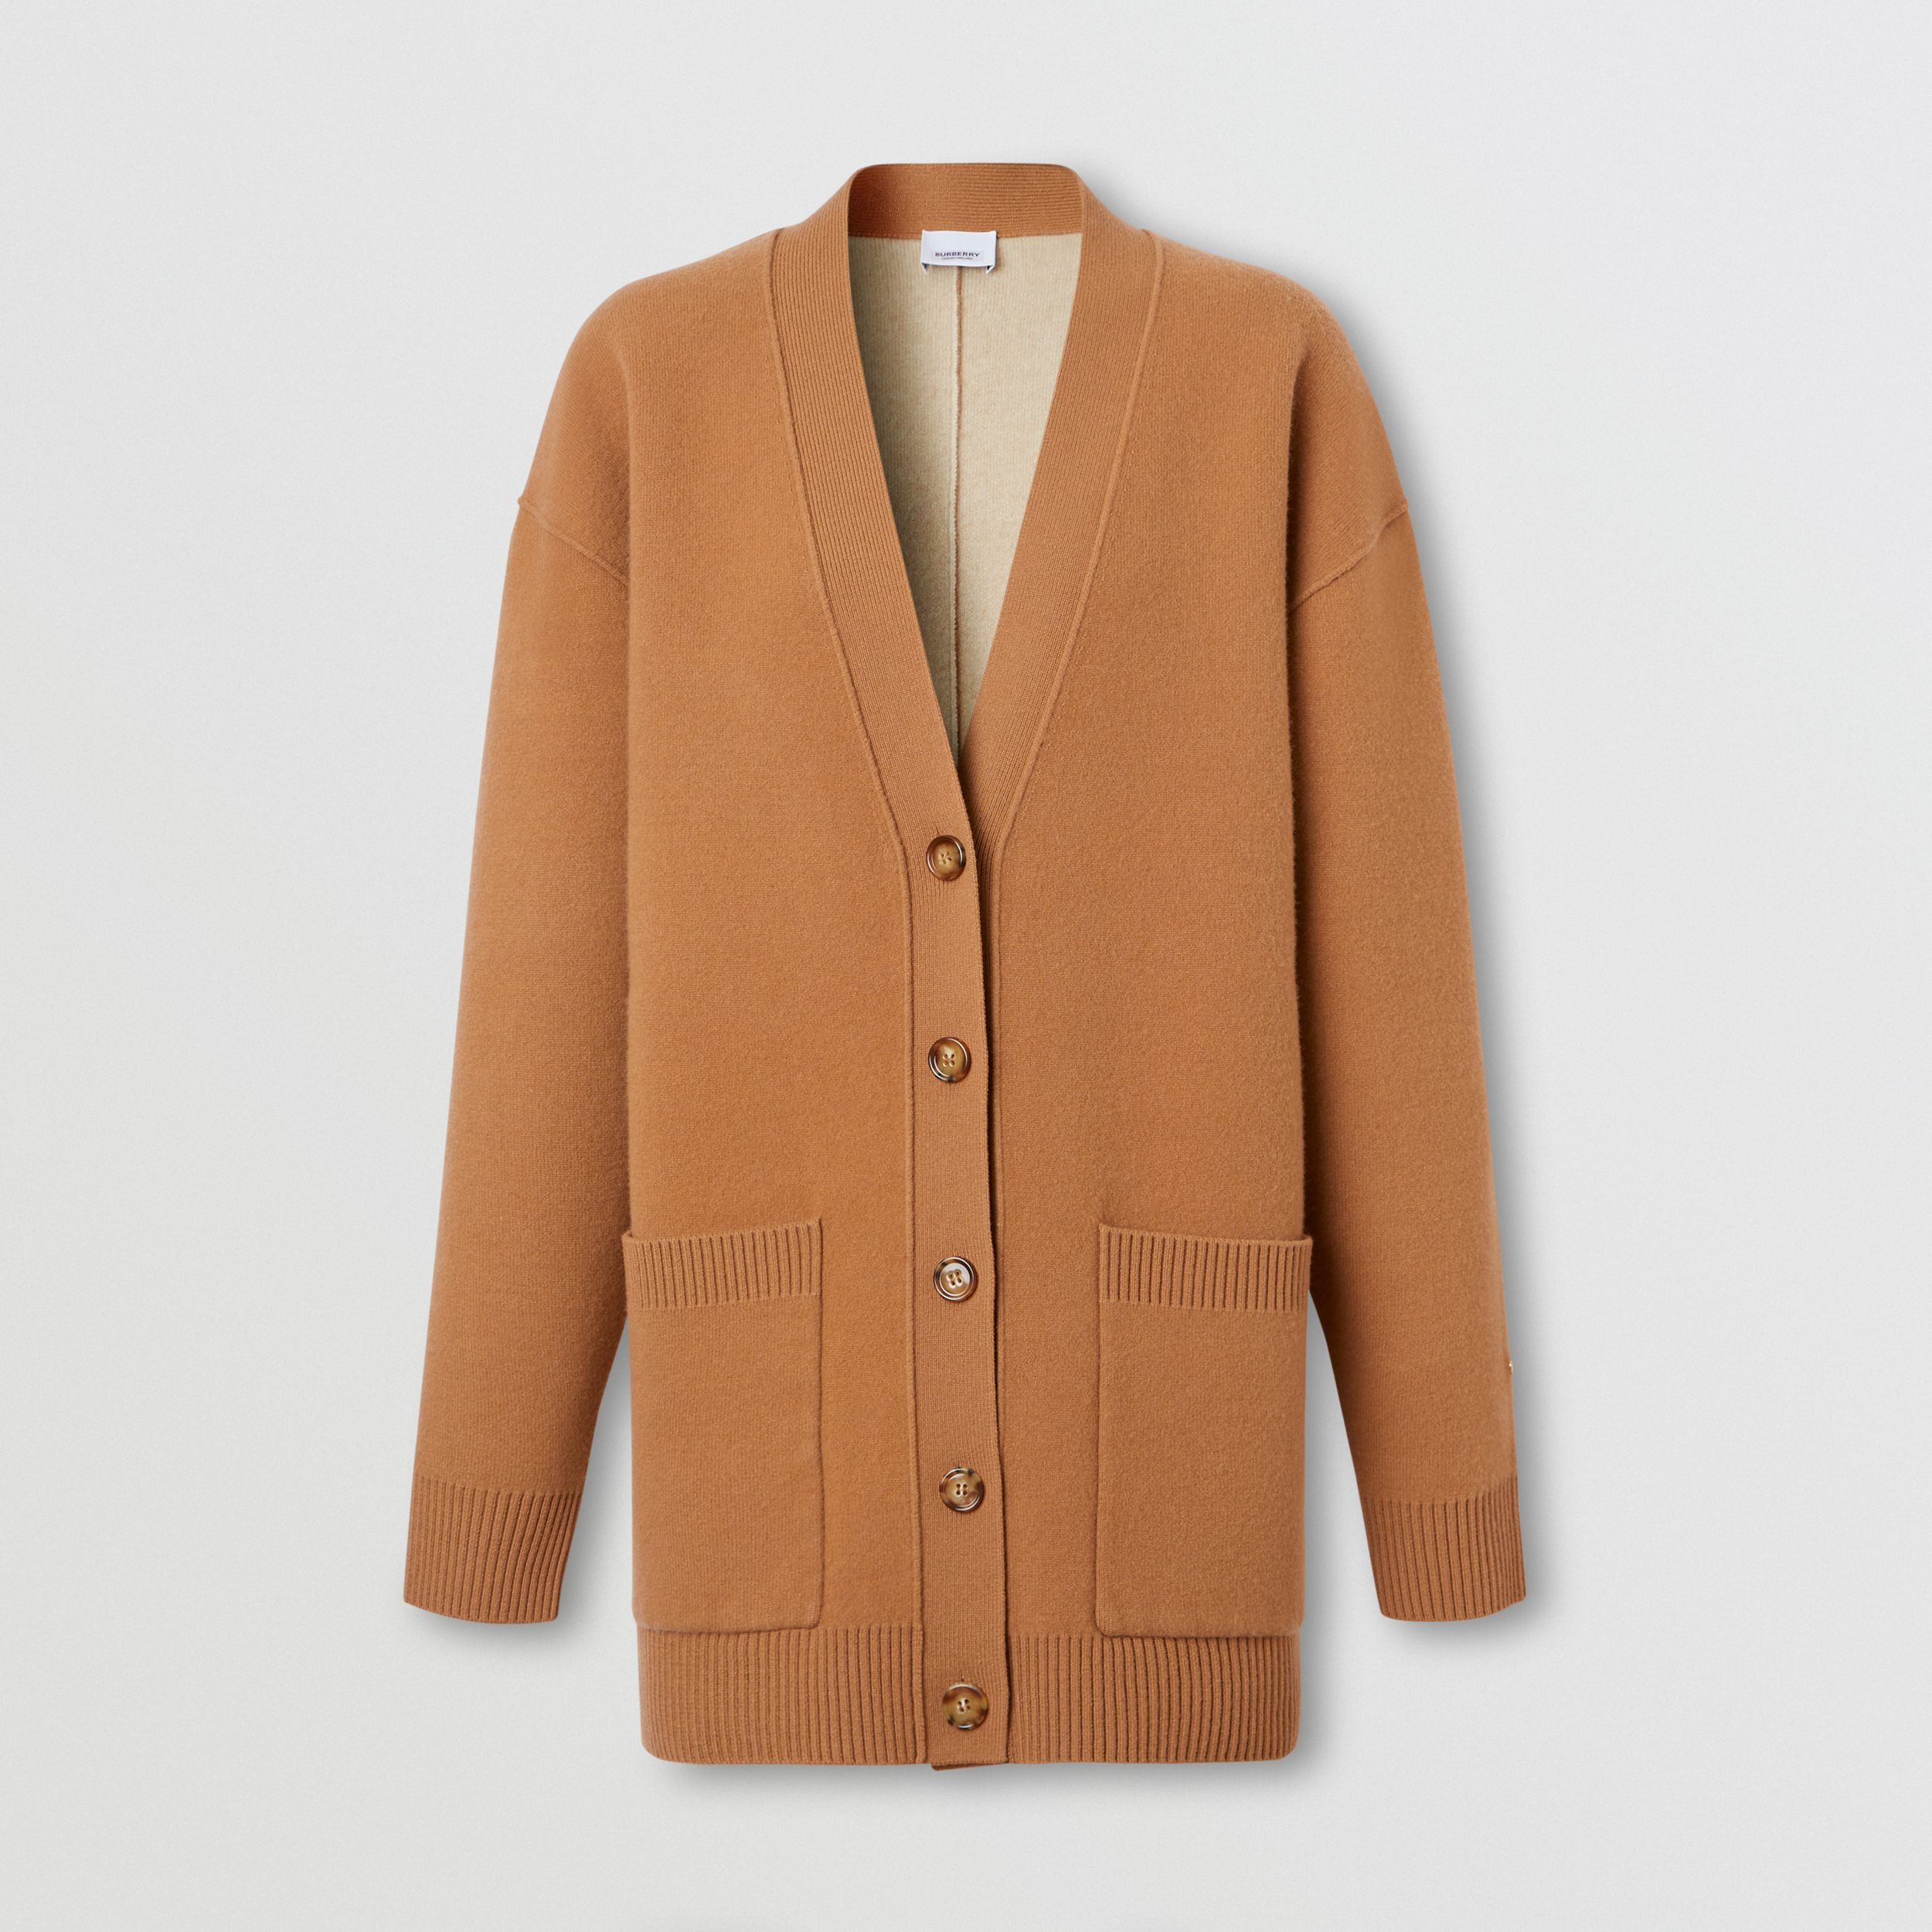 Merino Wool Cashmere Blend Oversized Cardigan in Warm Camel - Women | Burberry - 4